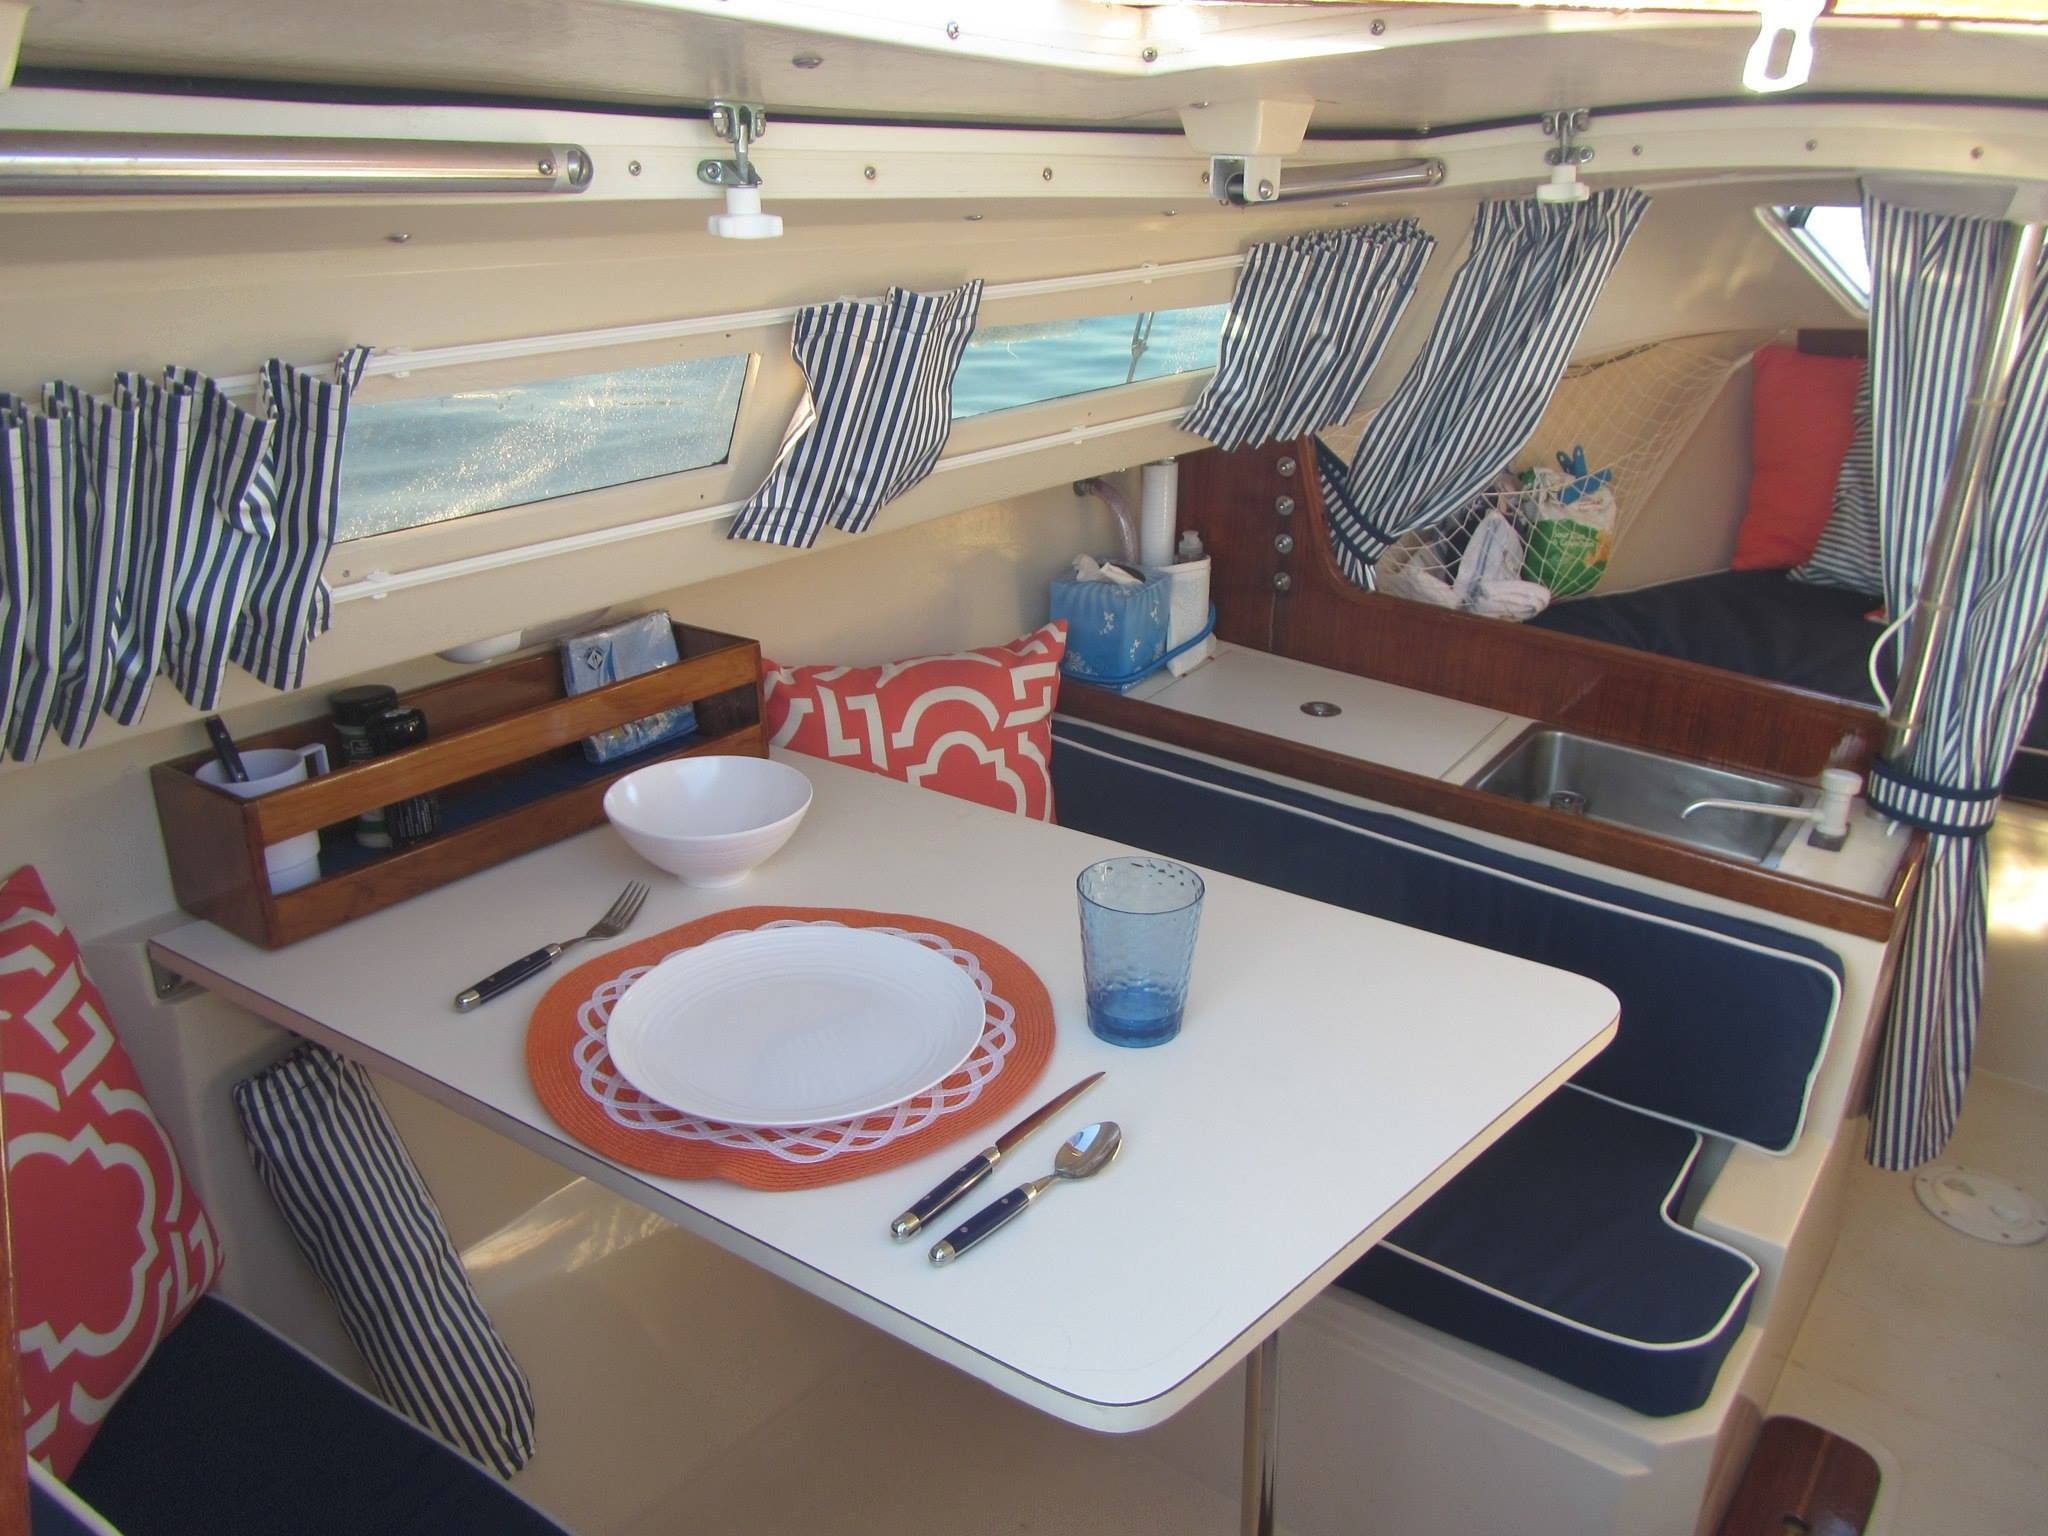 Find This Pin And More On Boat Living By Vickstar523.